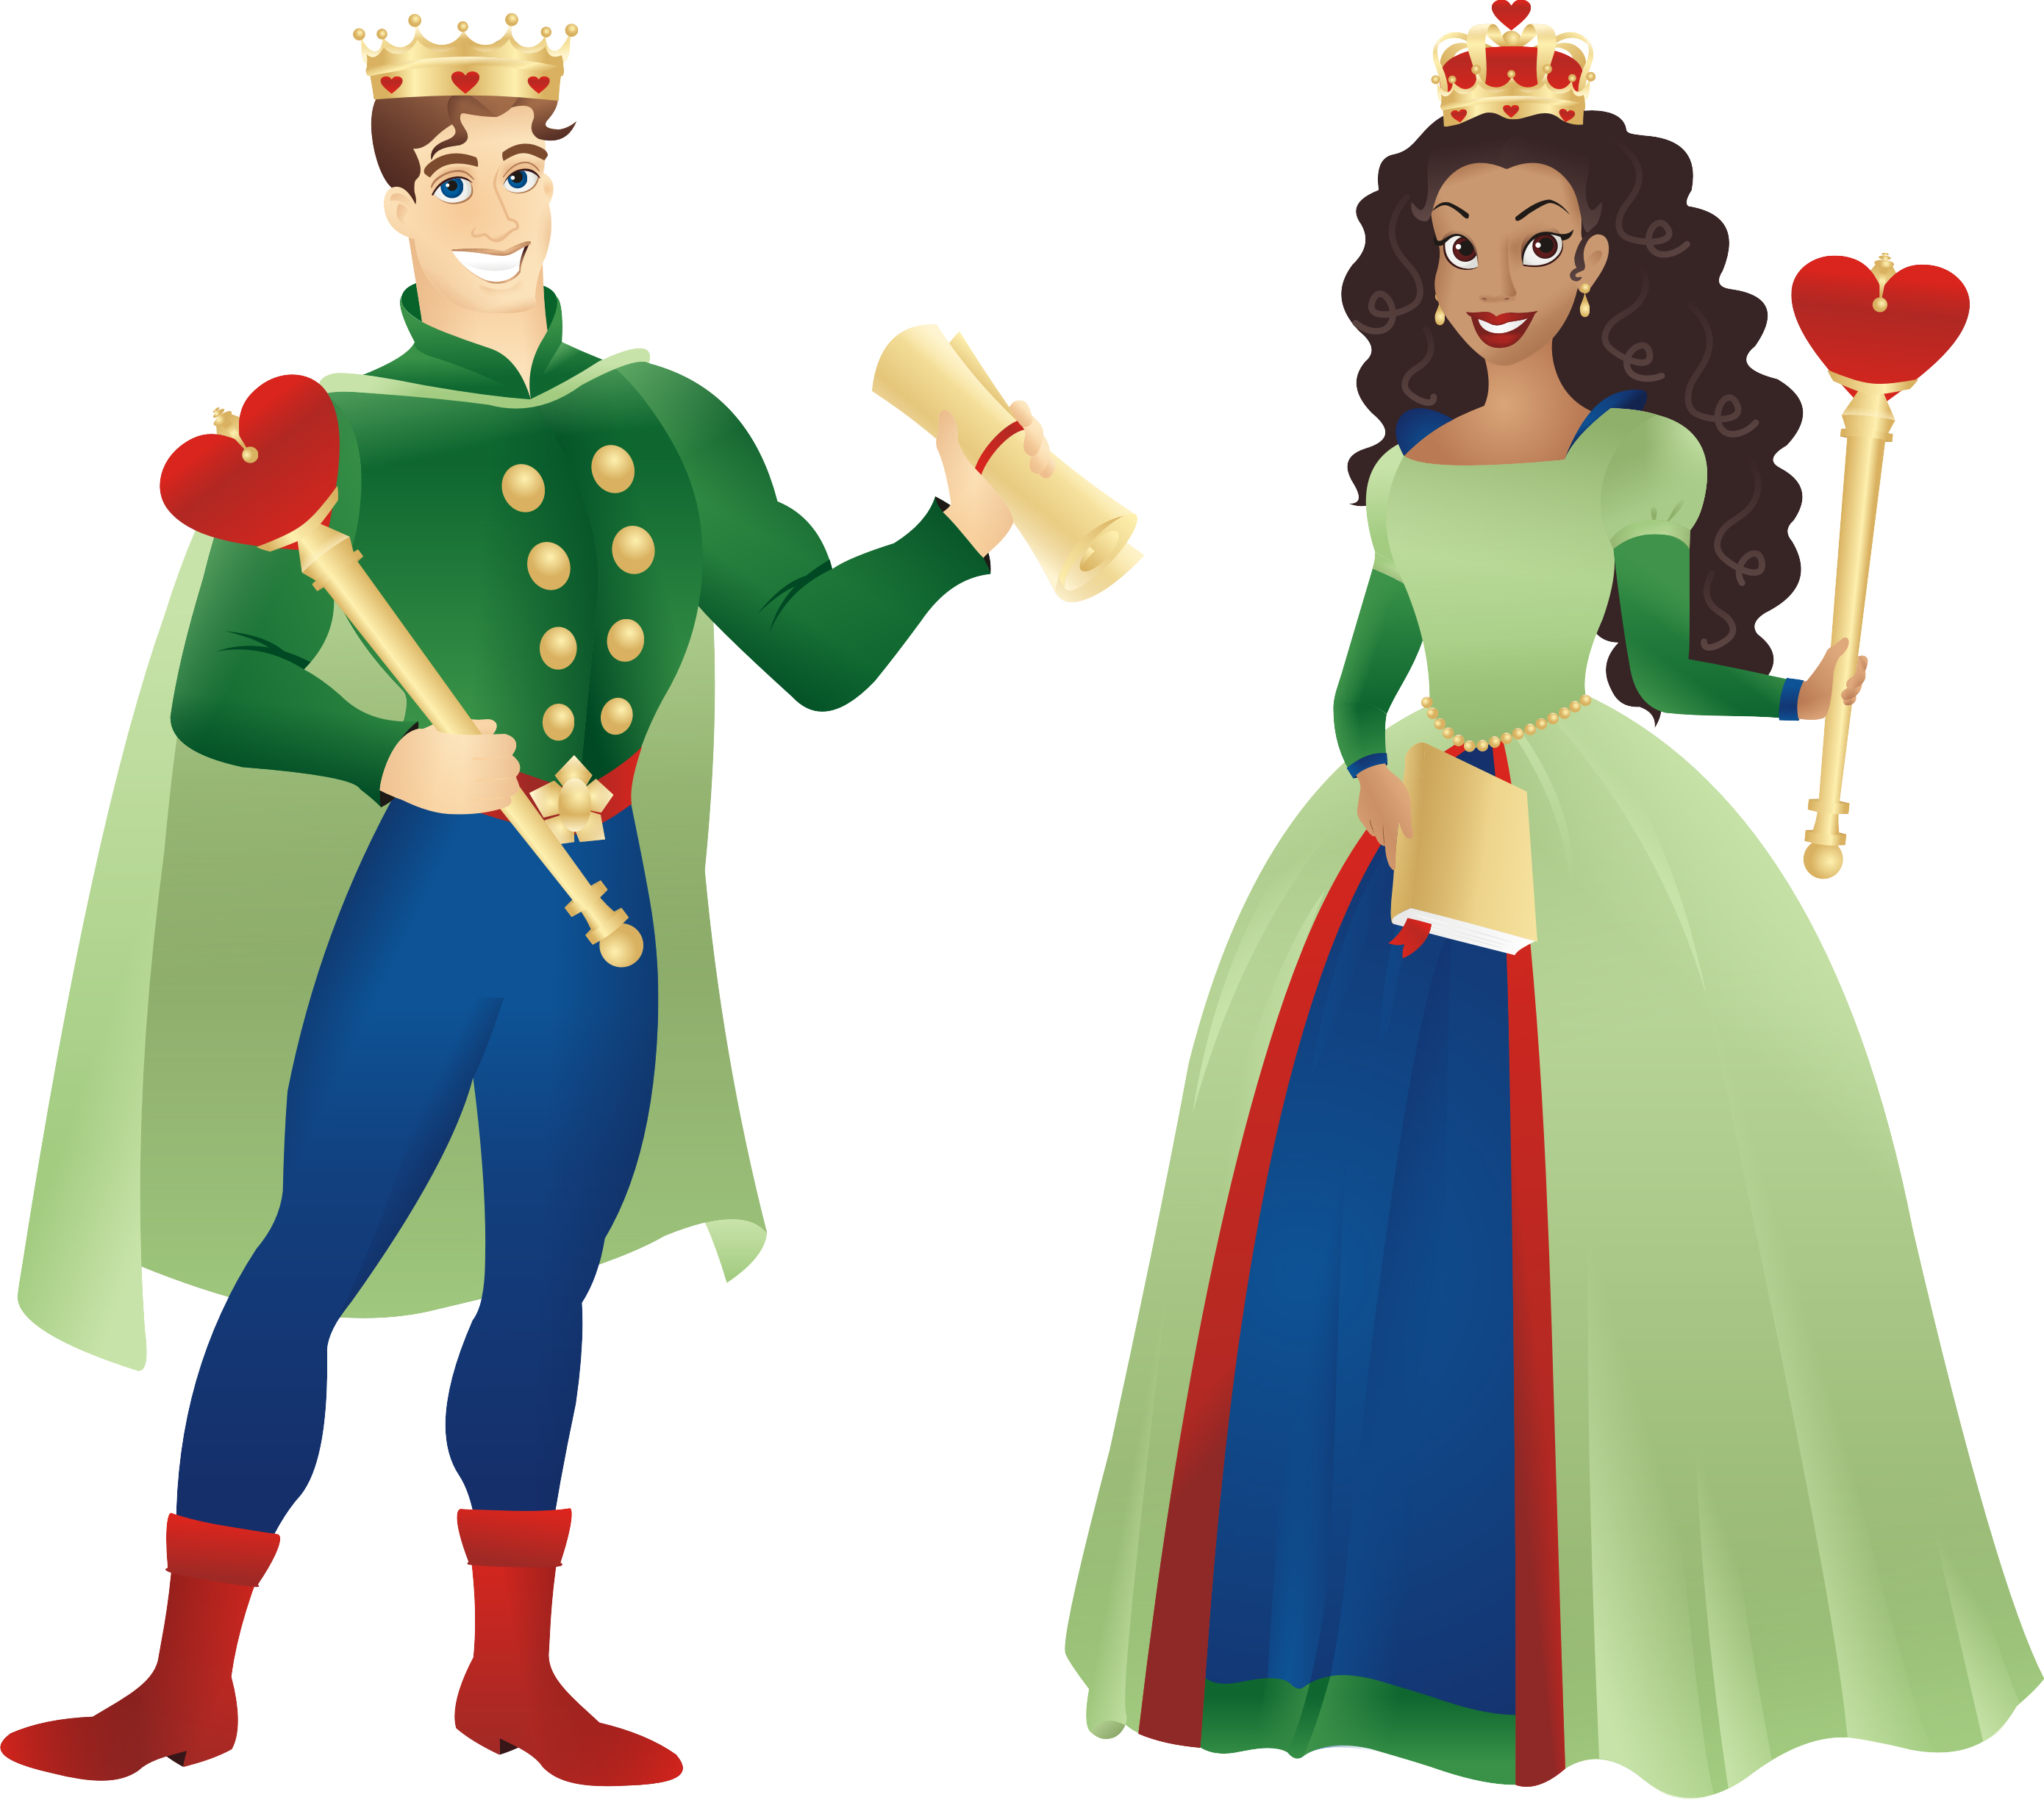 Free Queen Cliparts, Download Free Clip Art, Free Clip Art on.